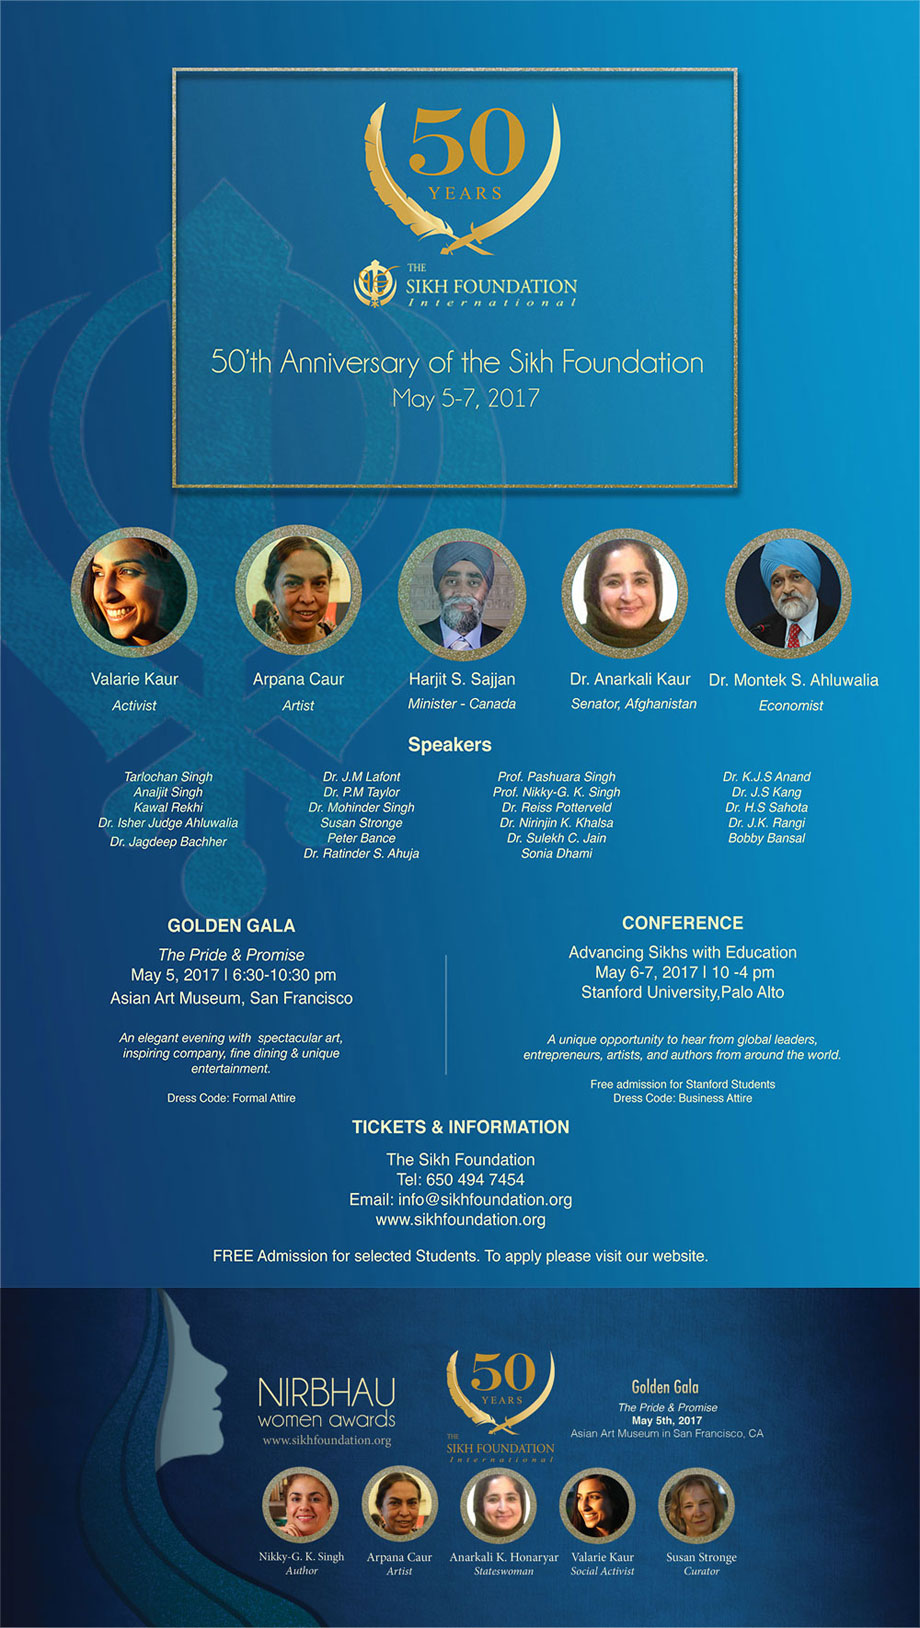 Sikh Foundation 50 years - Flyer of events